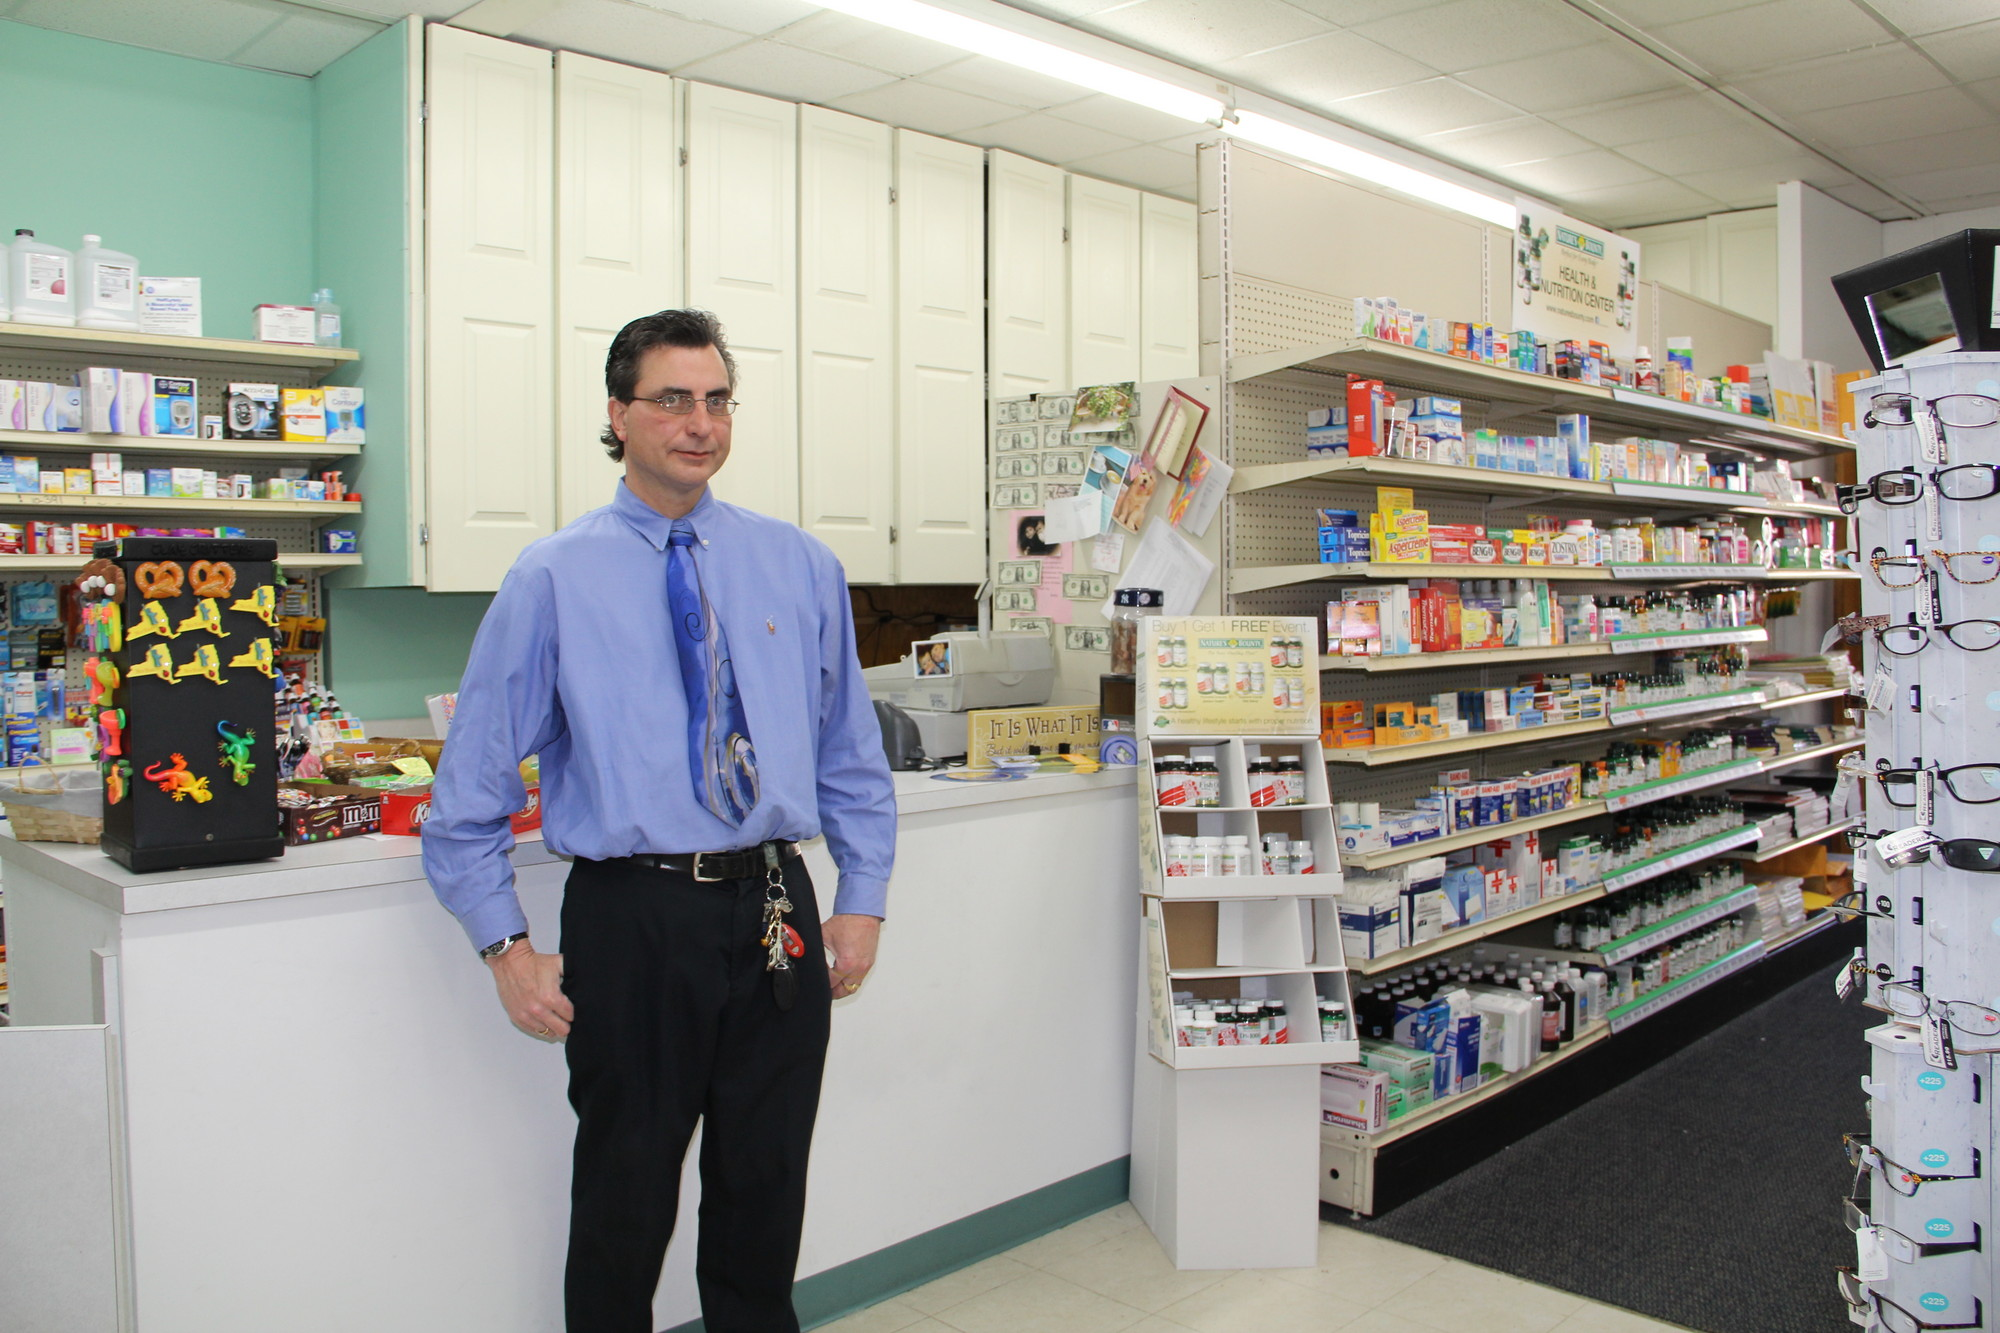 Bobby DeVivo, owner of Dale Drugs, hopes to move out of his temporary location and back to his old store on West Merrick Road by June or July.